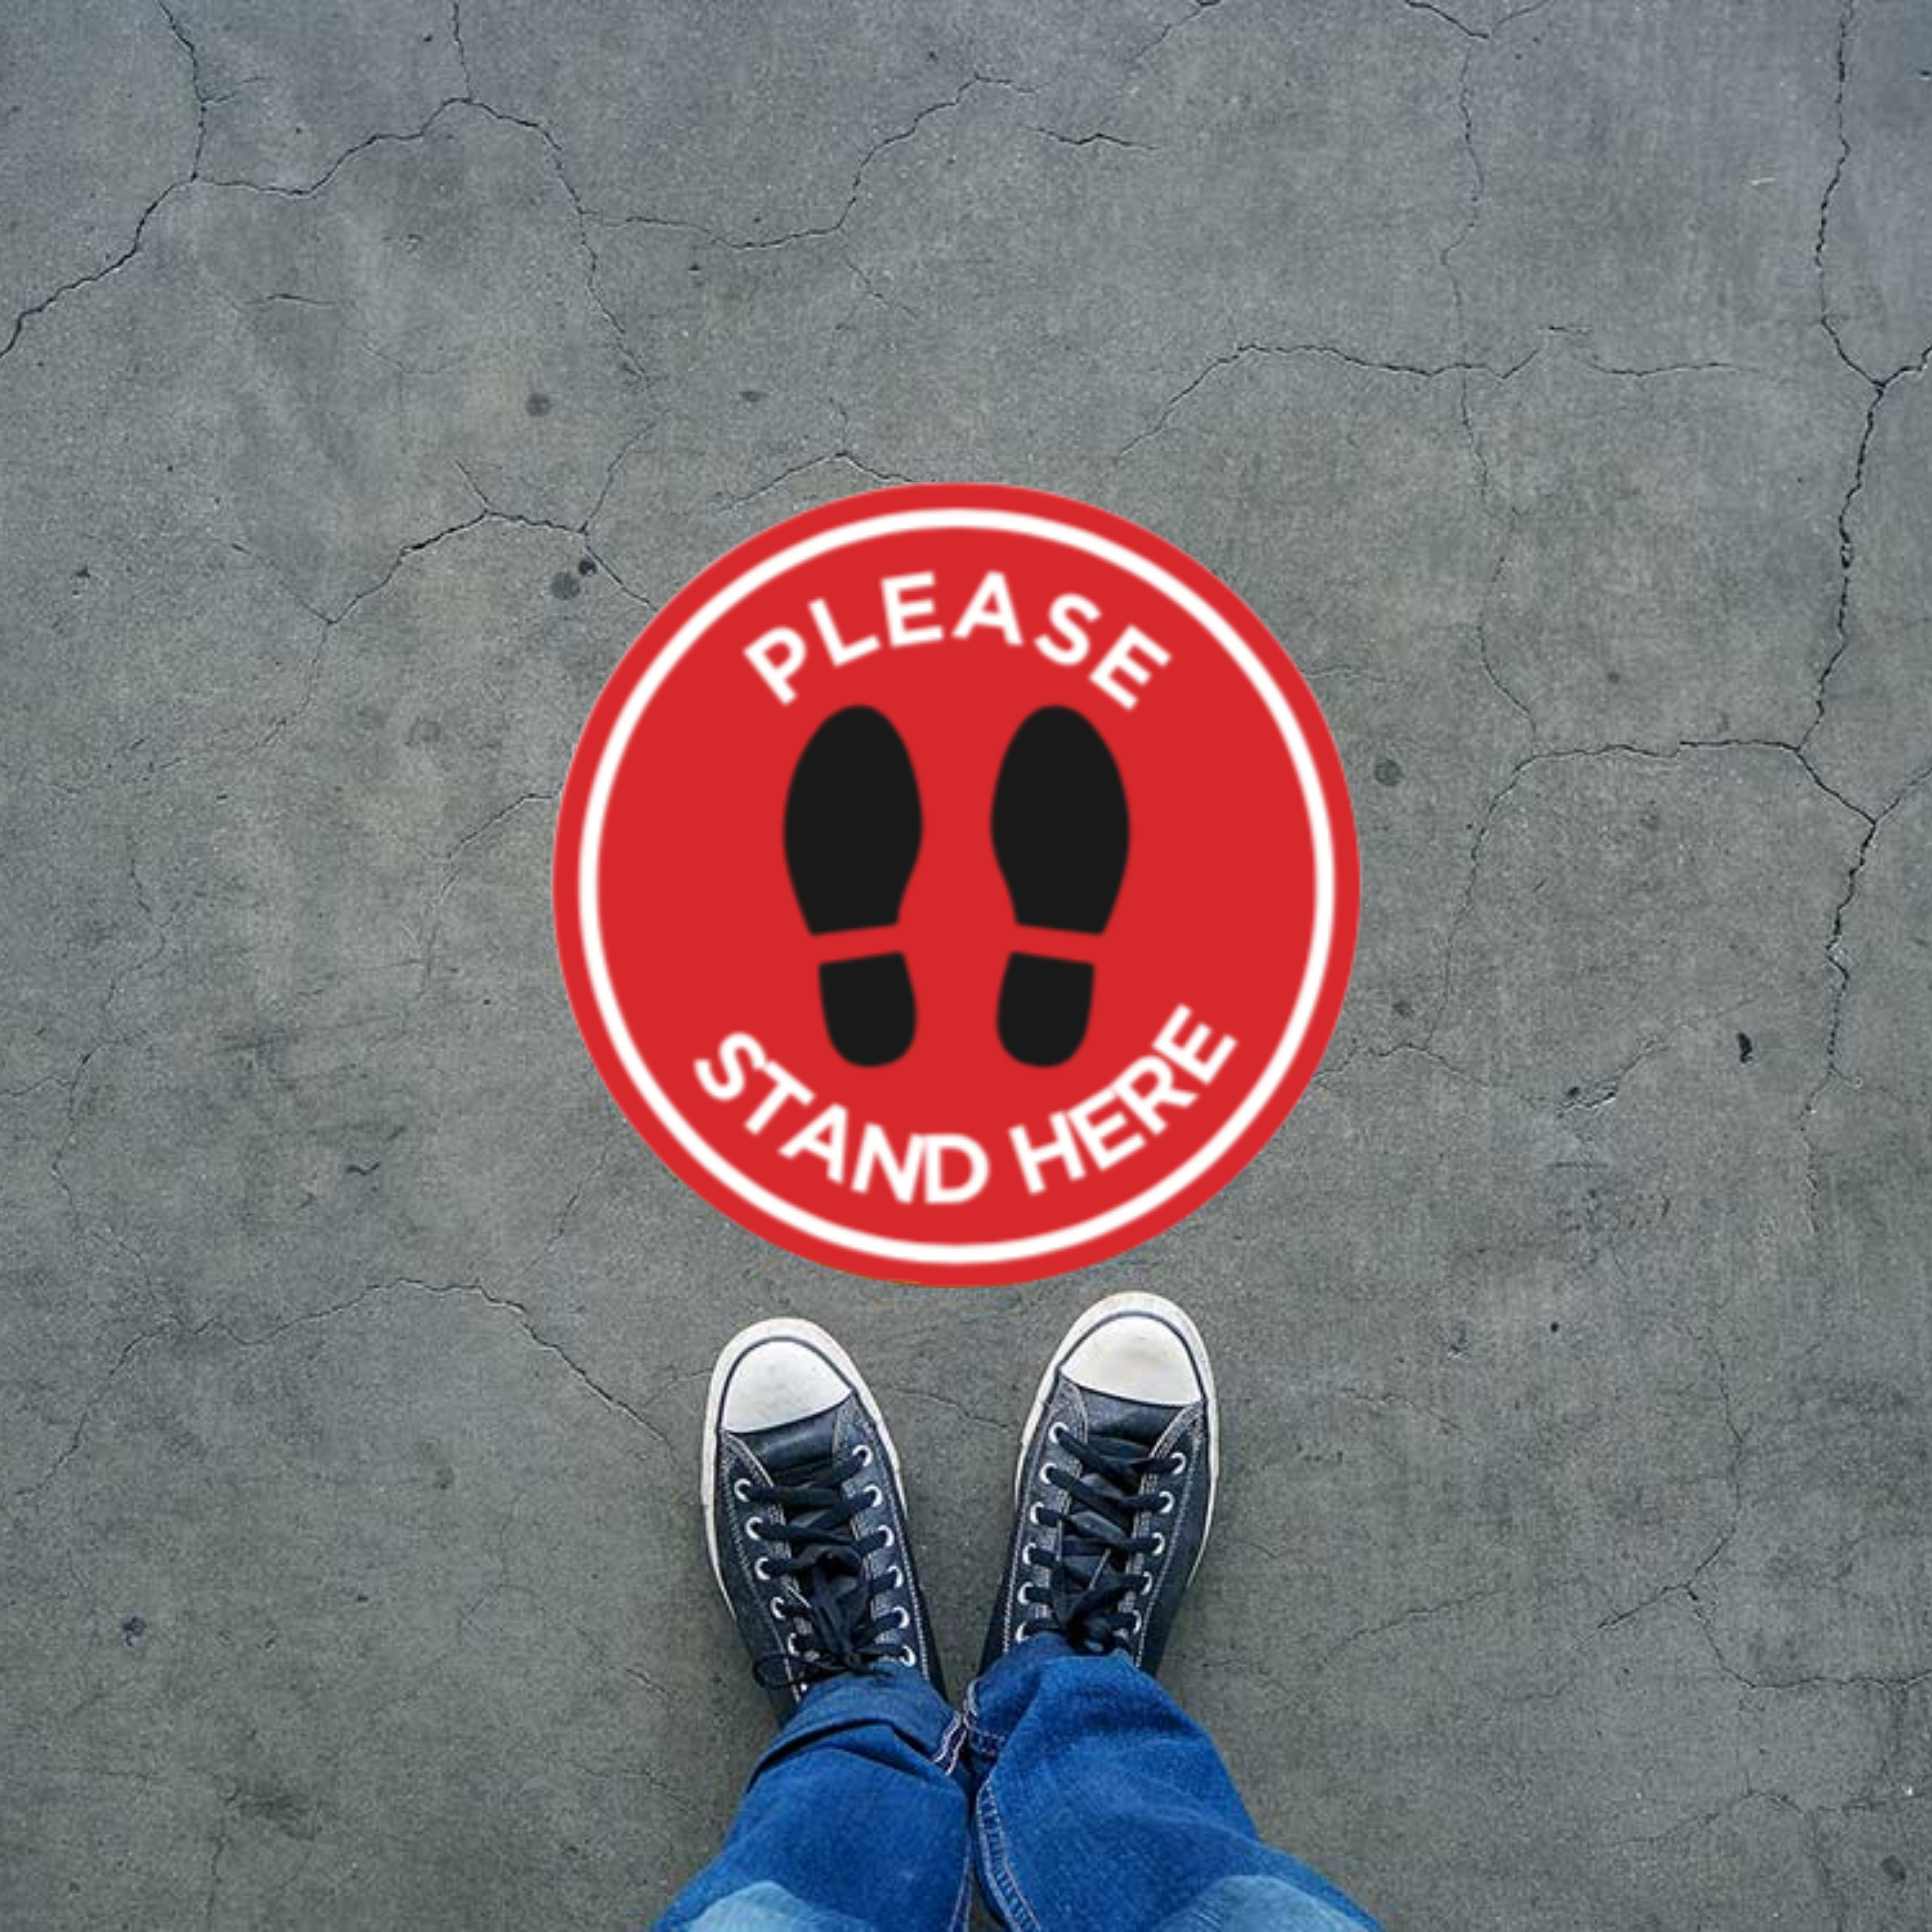 "Red Filled Circle Footprints with Wording (""Please Stand Here"") (Floor Decal) [101-06/102-06]"